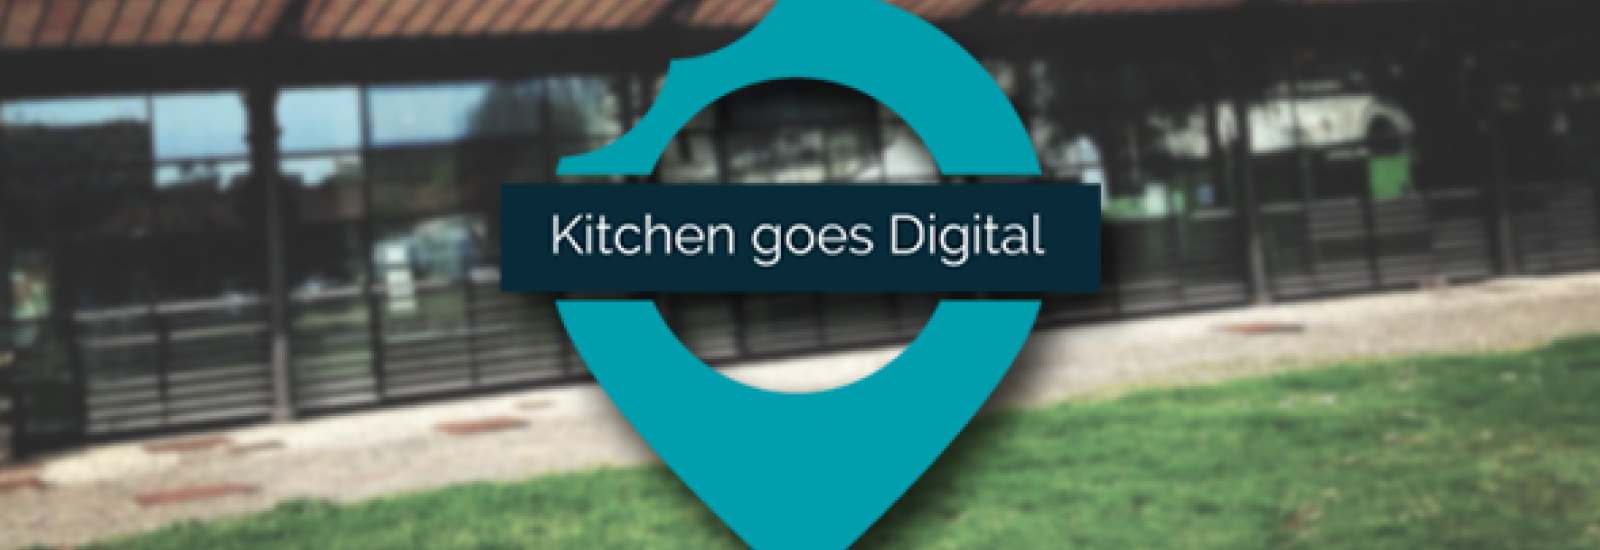 Kitchen goes Digital